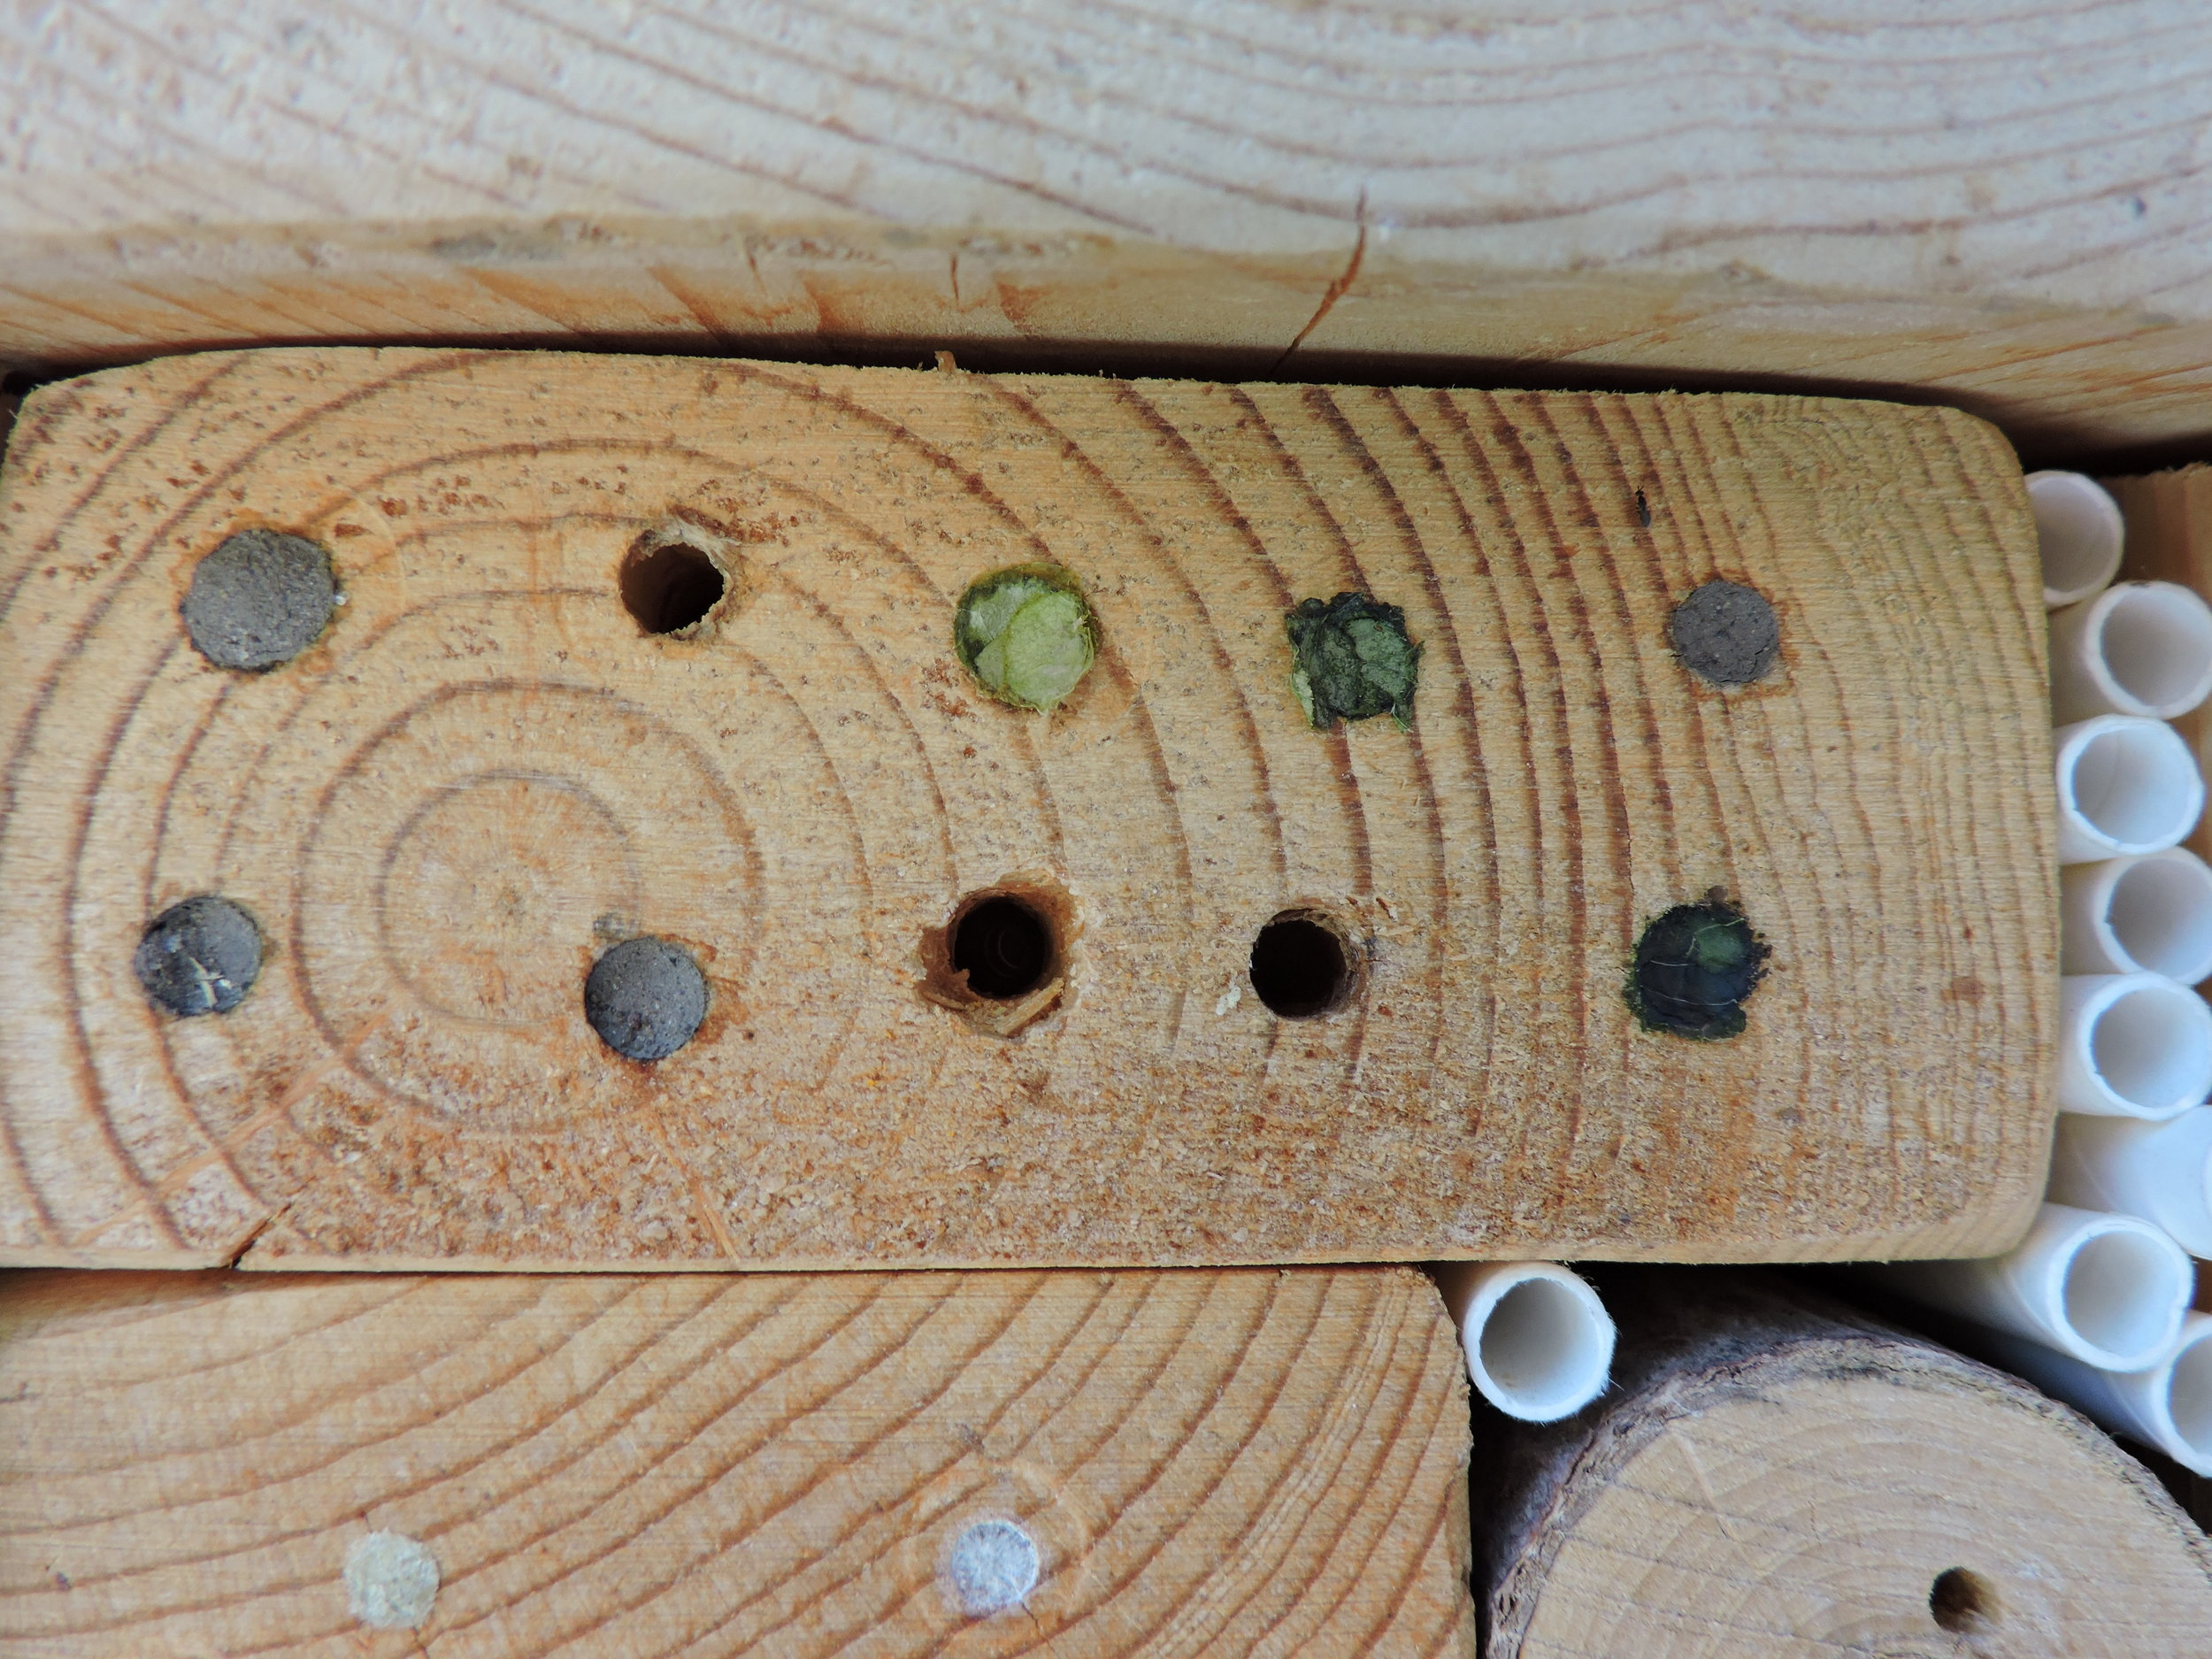 leaf cutter, mason bee, and masked bee nests